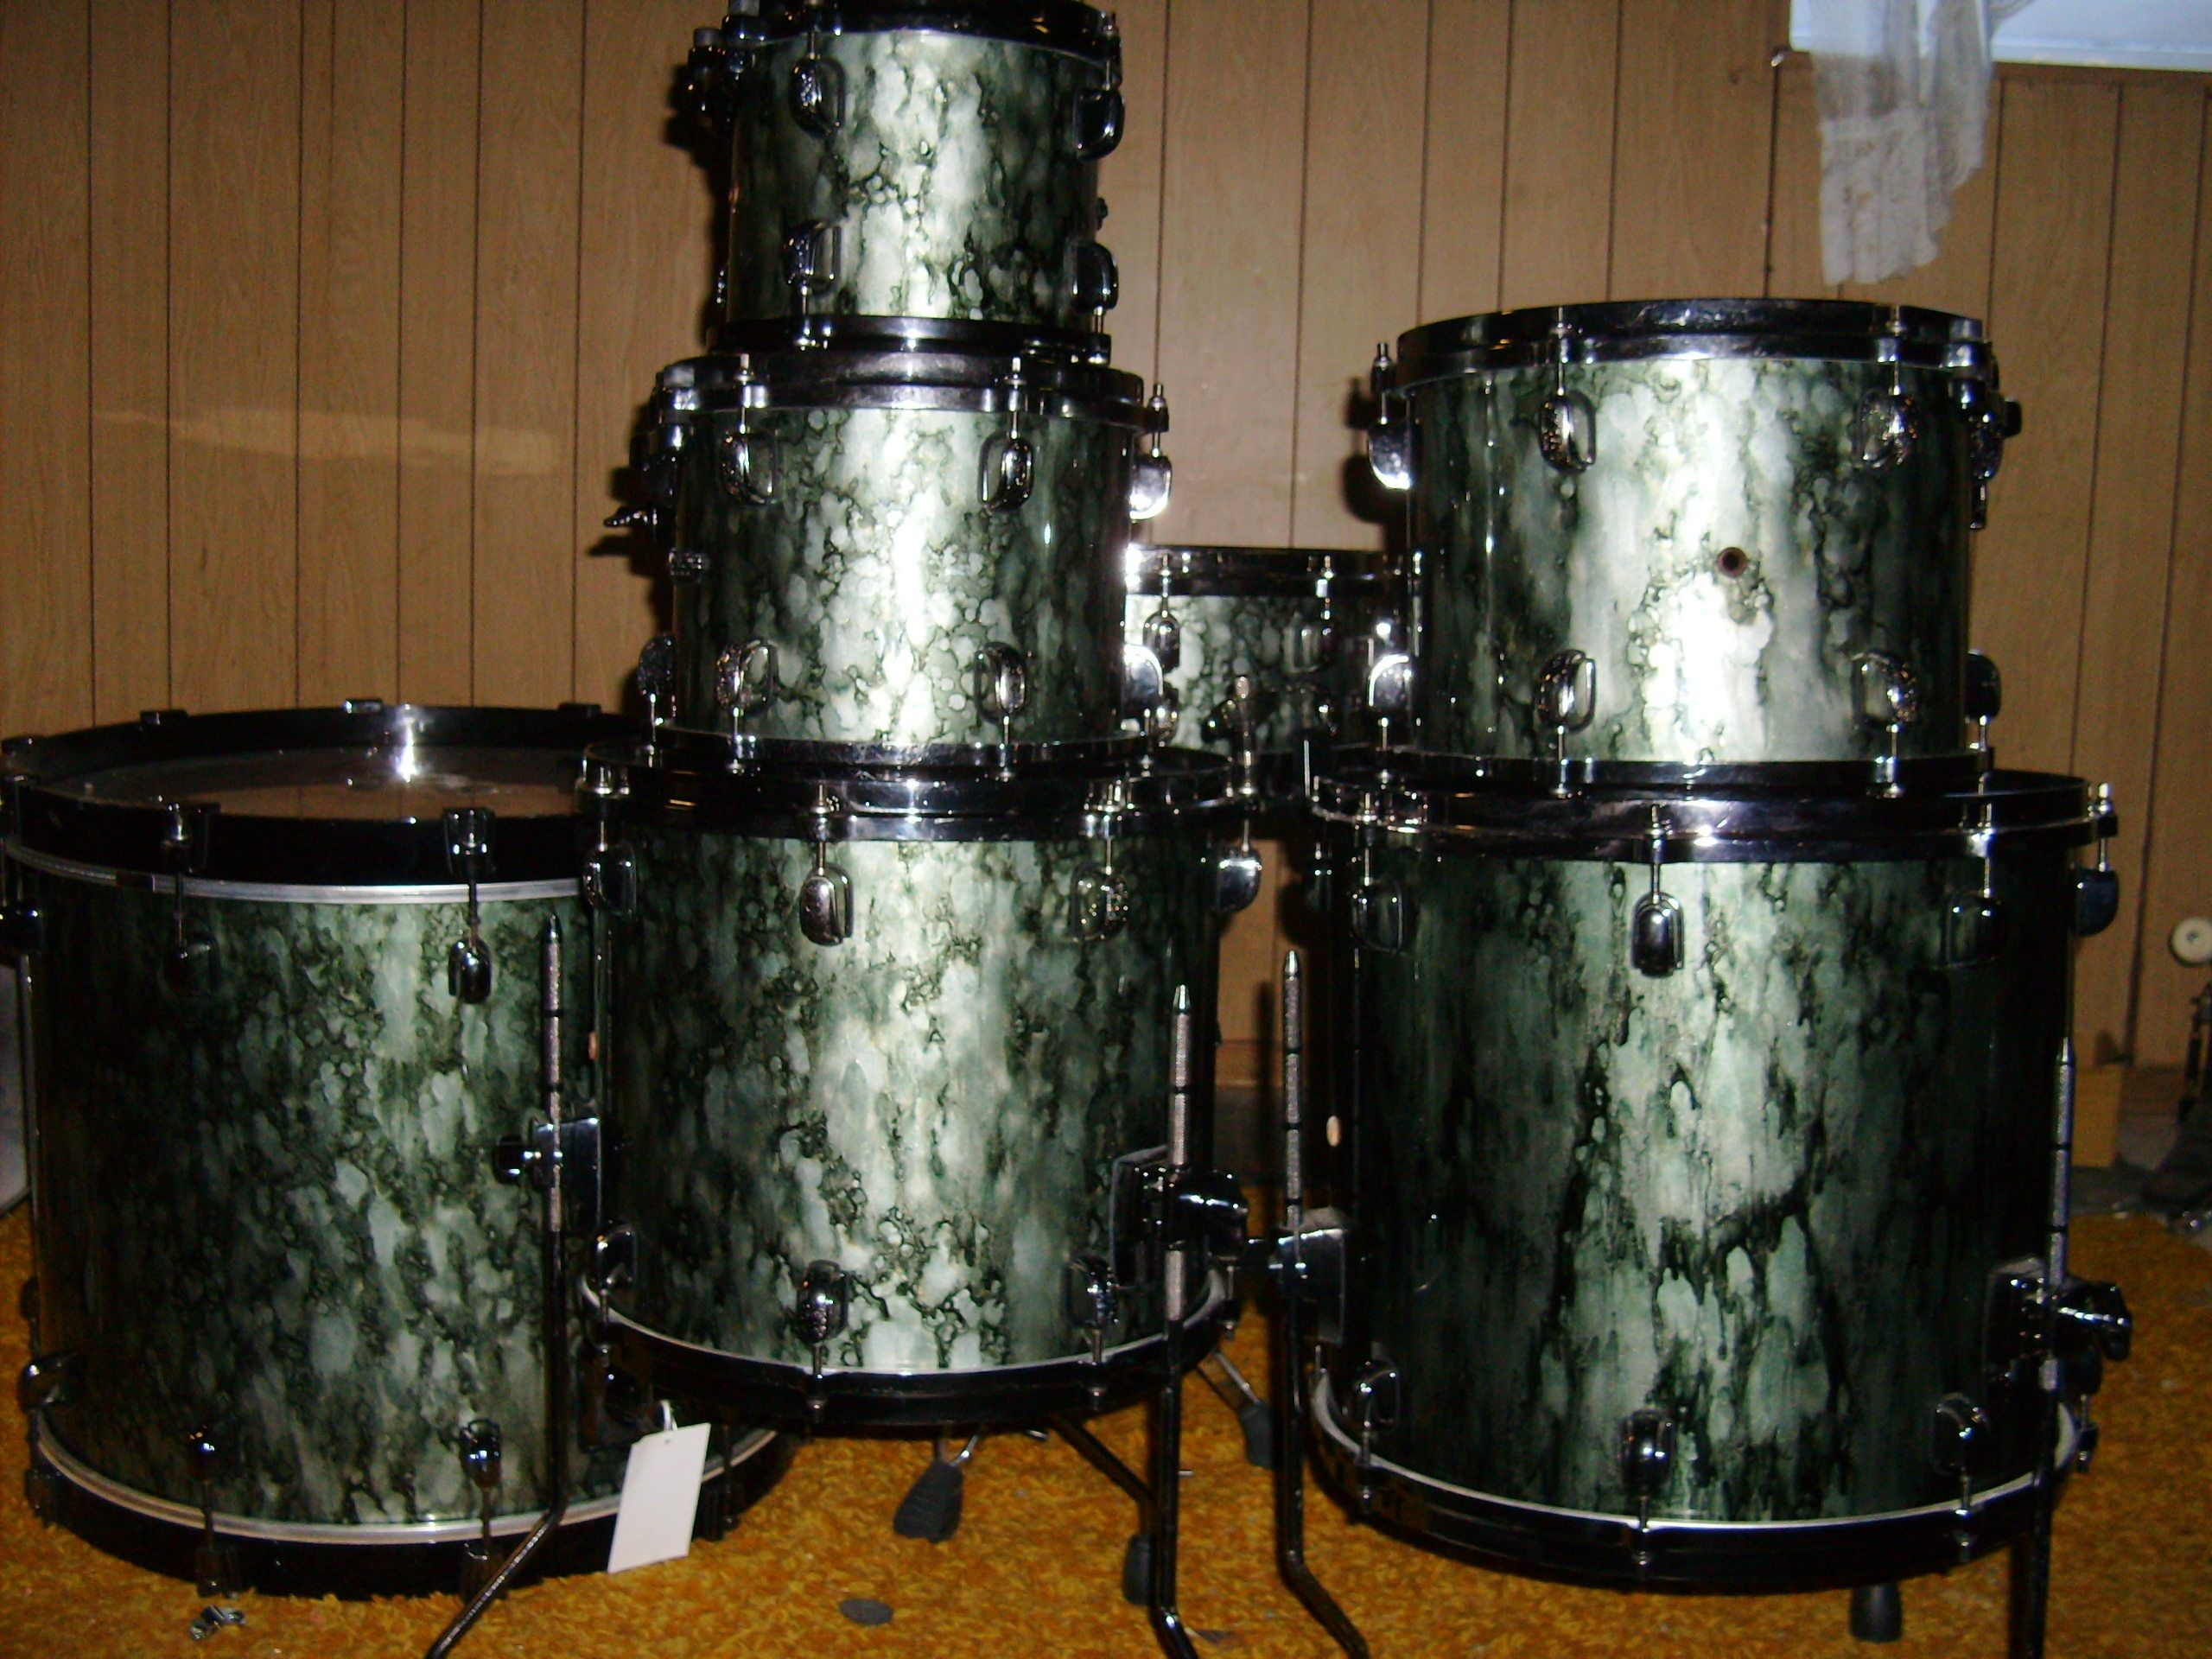 Tama 7 Piece Drum Kit Collectors Edition For Sale On Ebay